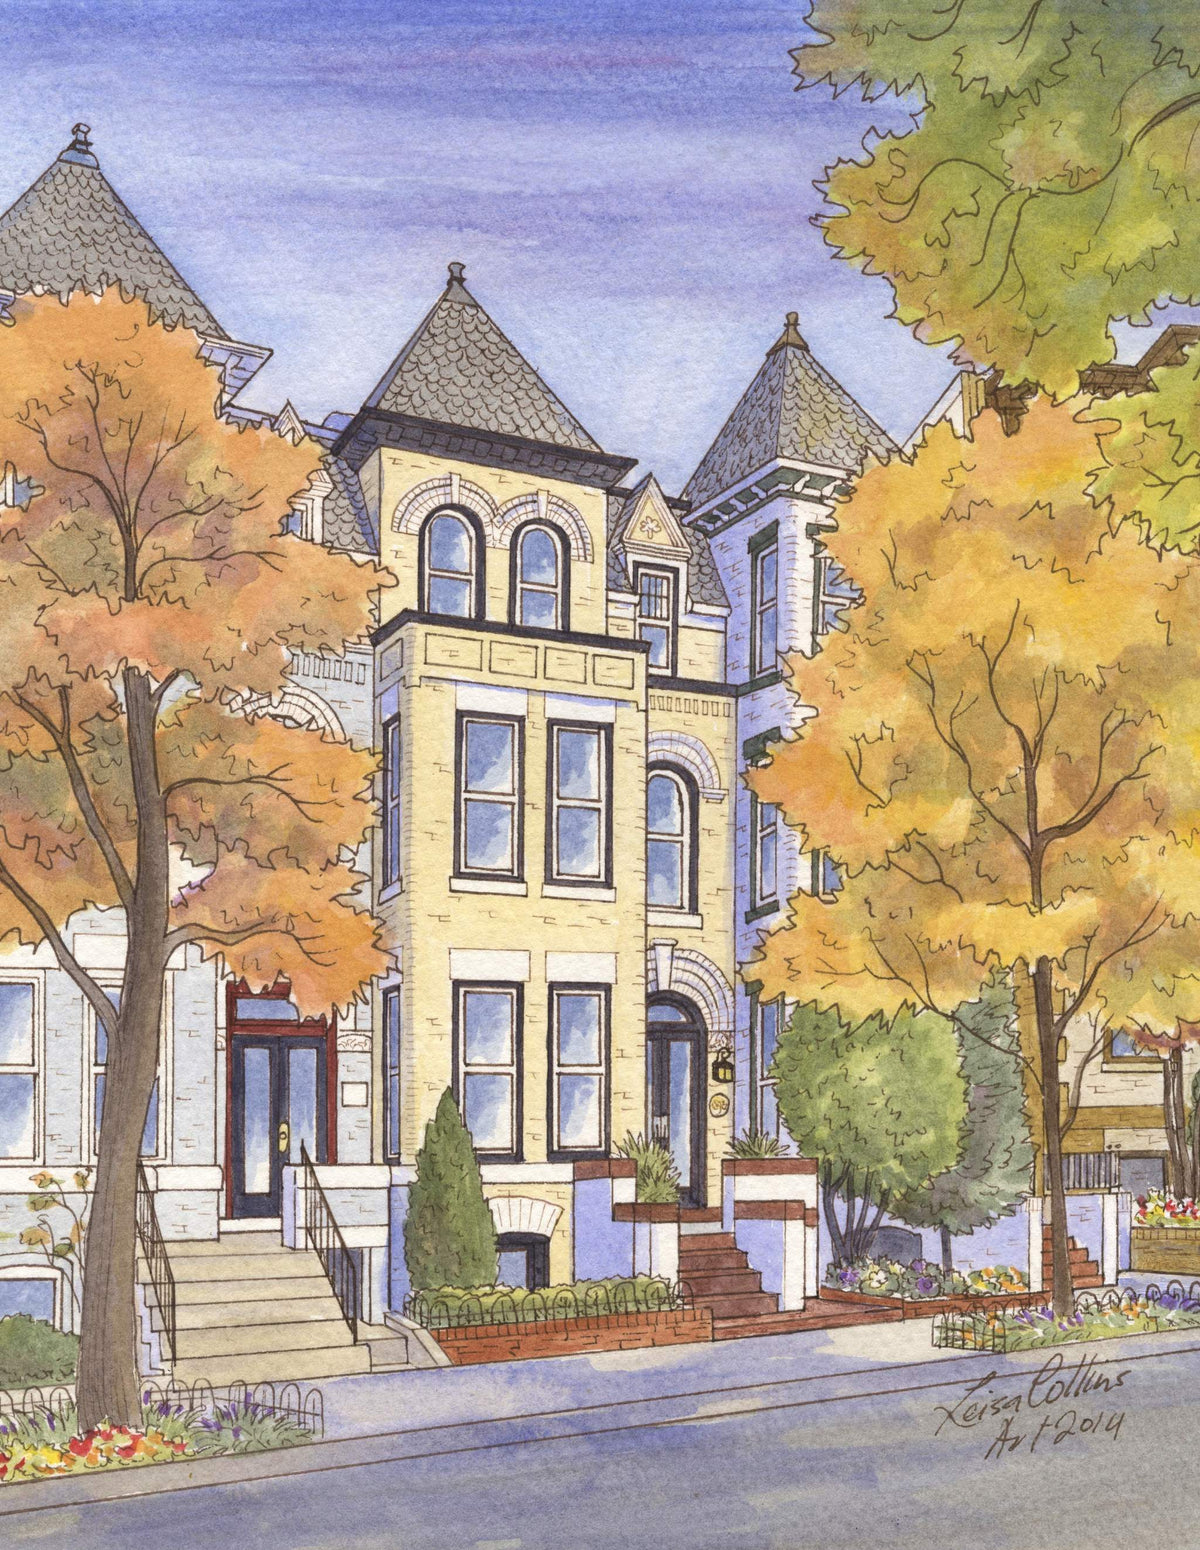 leisa-collins-art-shop - Washington DC Victorian Row Houses - Pen and watercolor